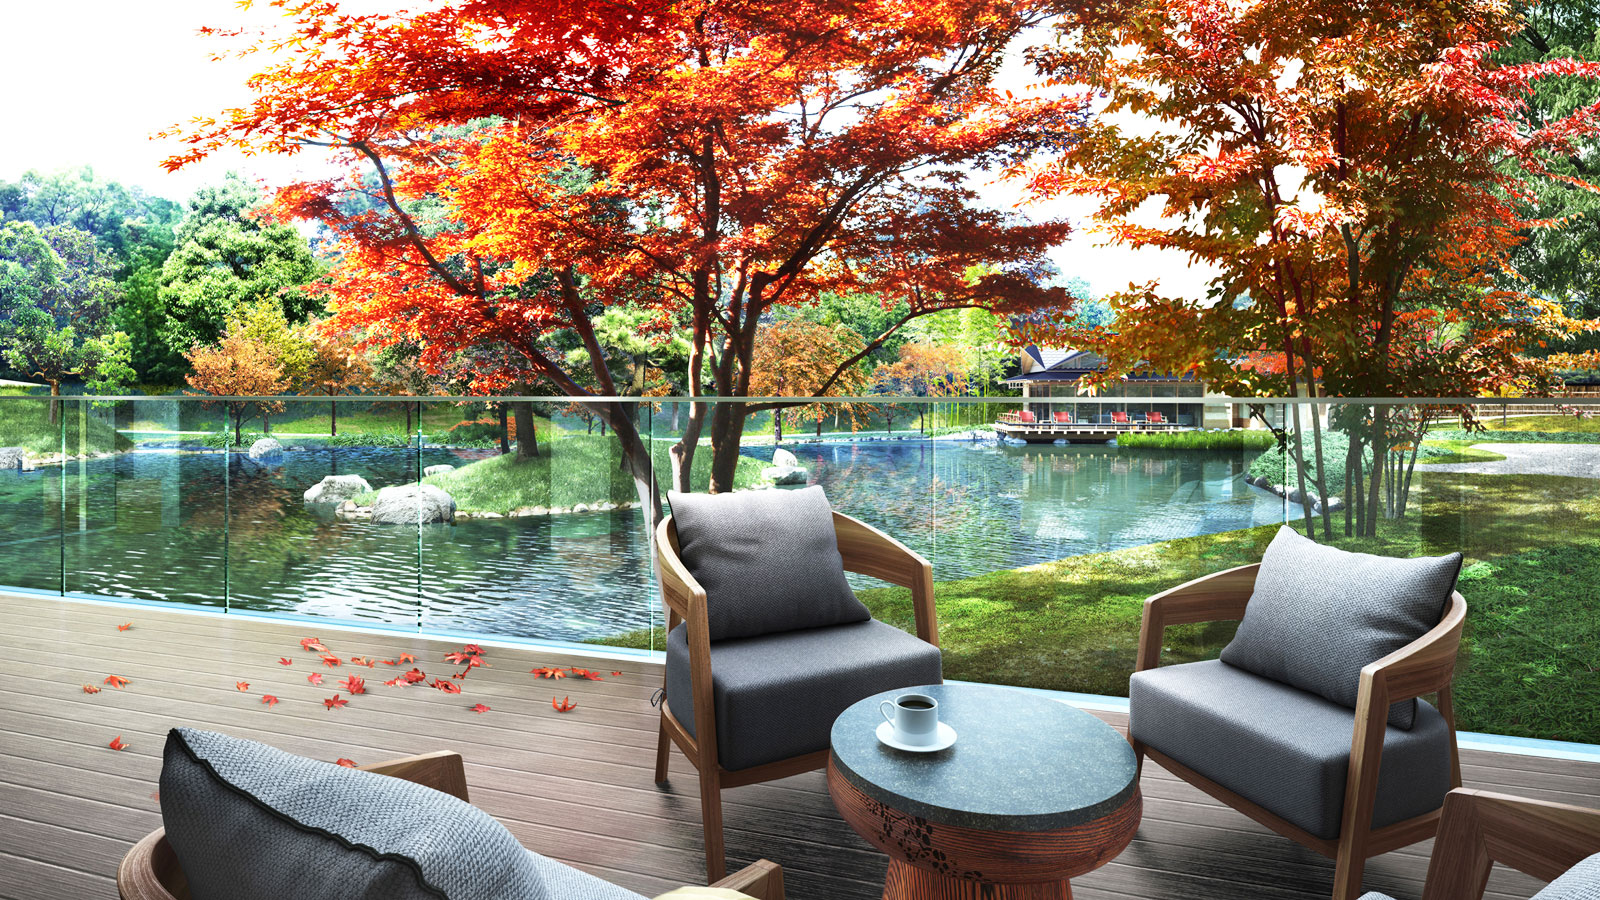 Four Seasons Hotel Kyoto Open's In Japan's Ancient Imperial Capital